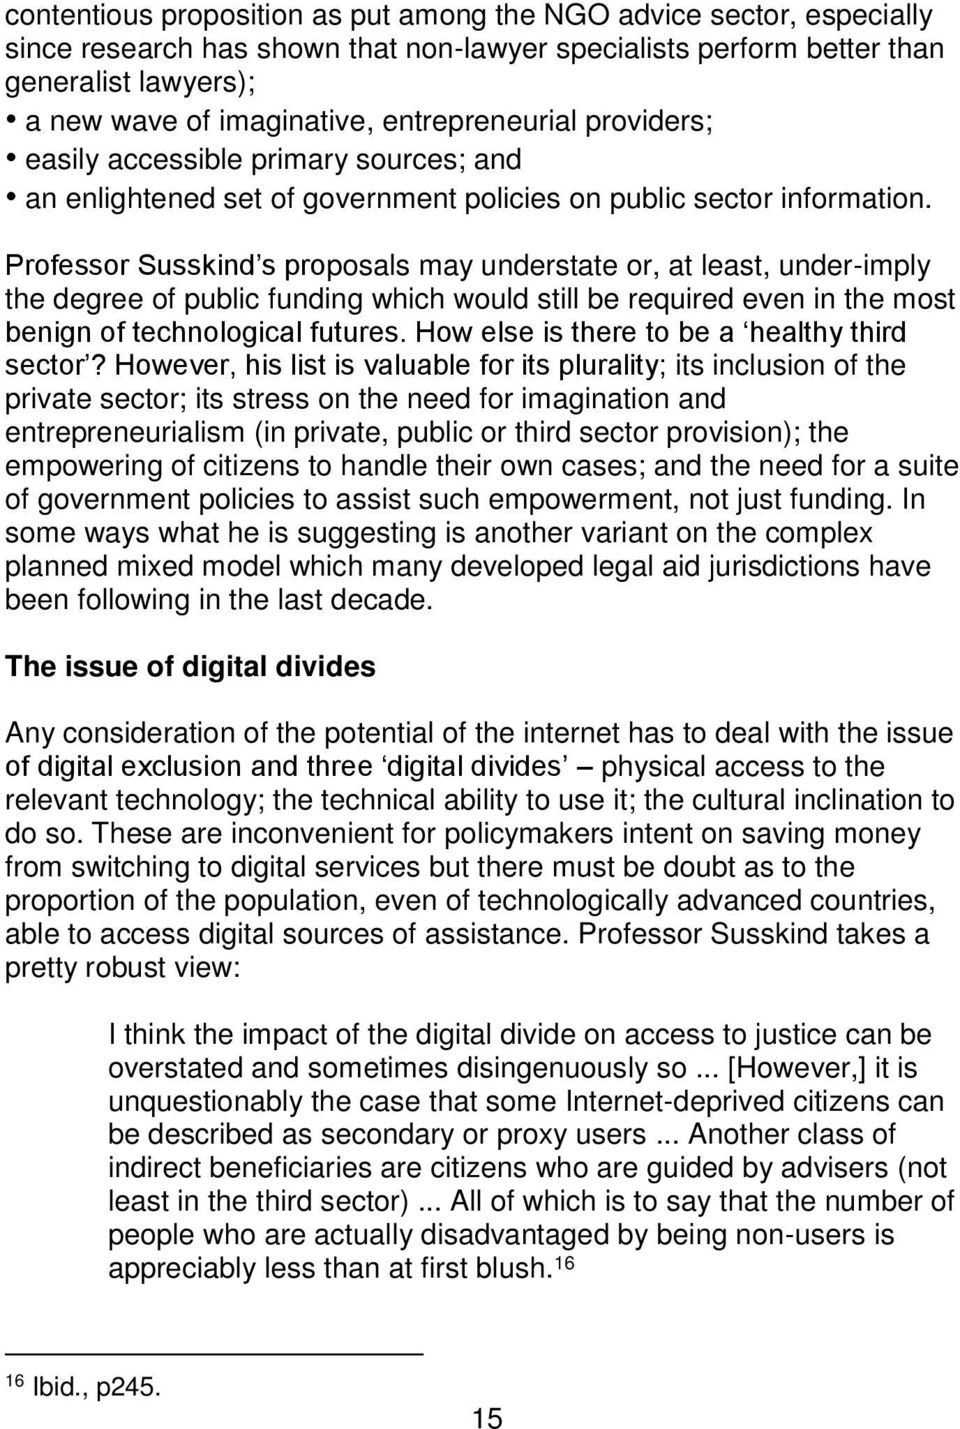 Professor Susskind s proposals may understate or, at least, under-imply the degree of public funding which would still be required even in the most benign of technological futures.